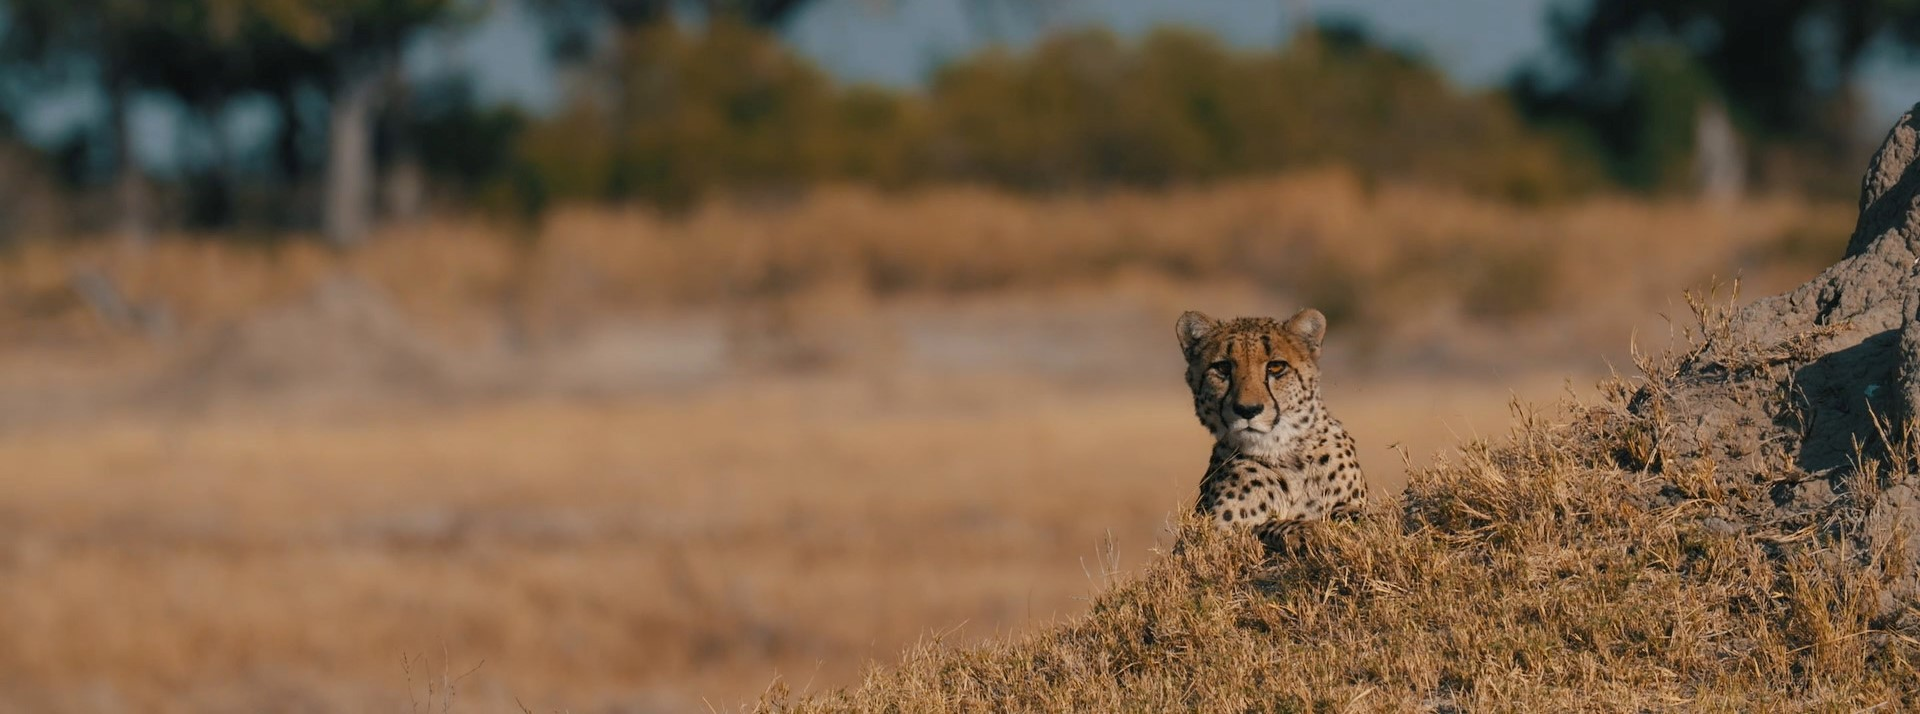 leopard-sighting-okavango-delta